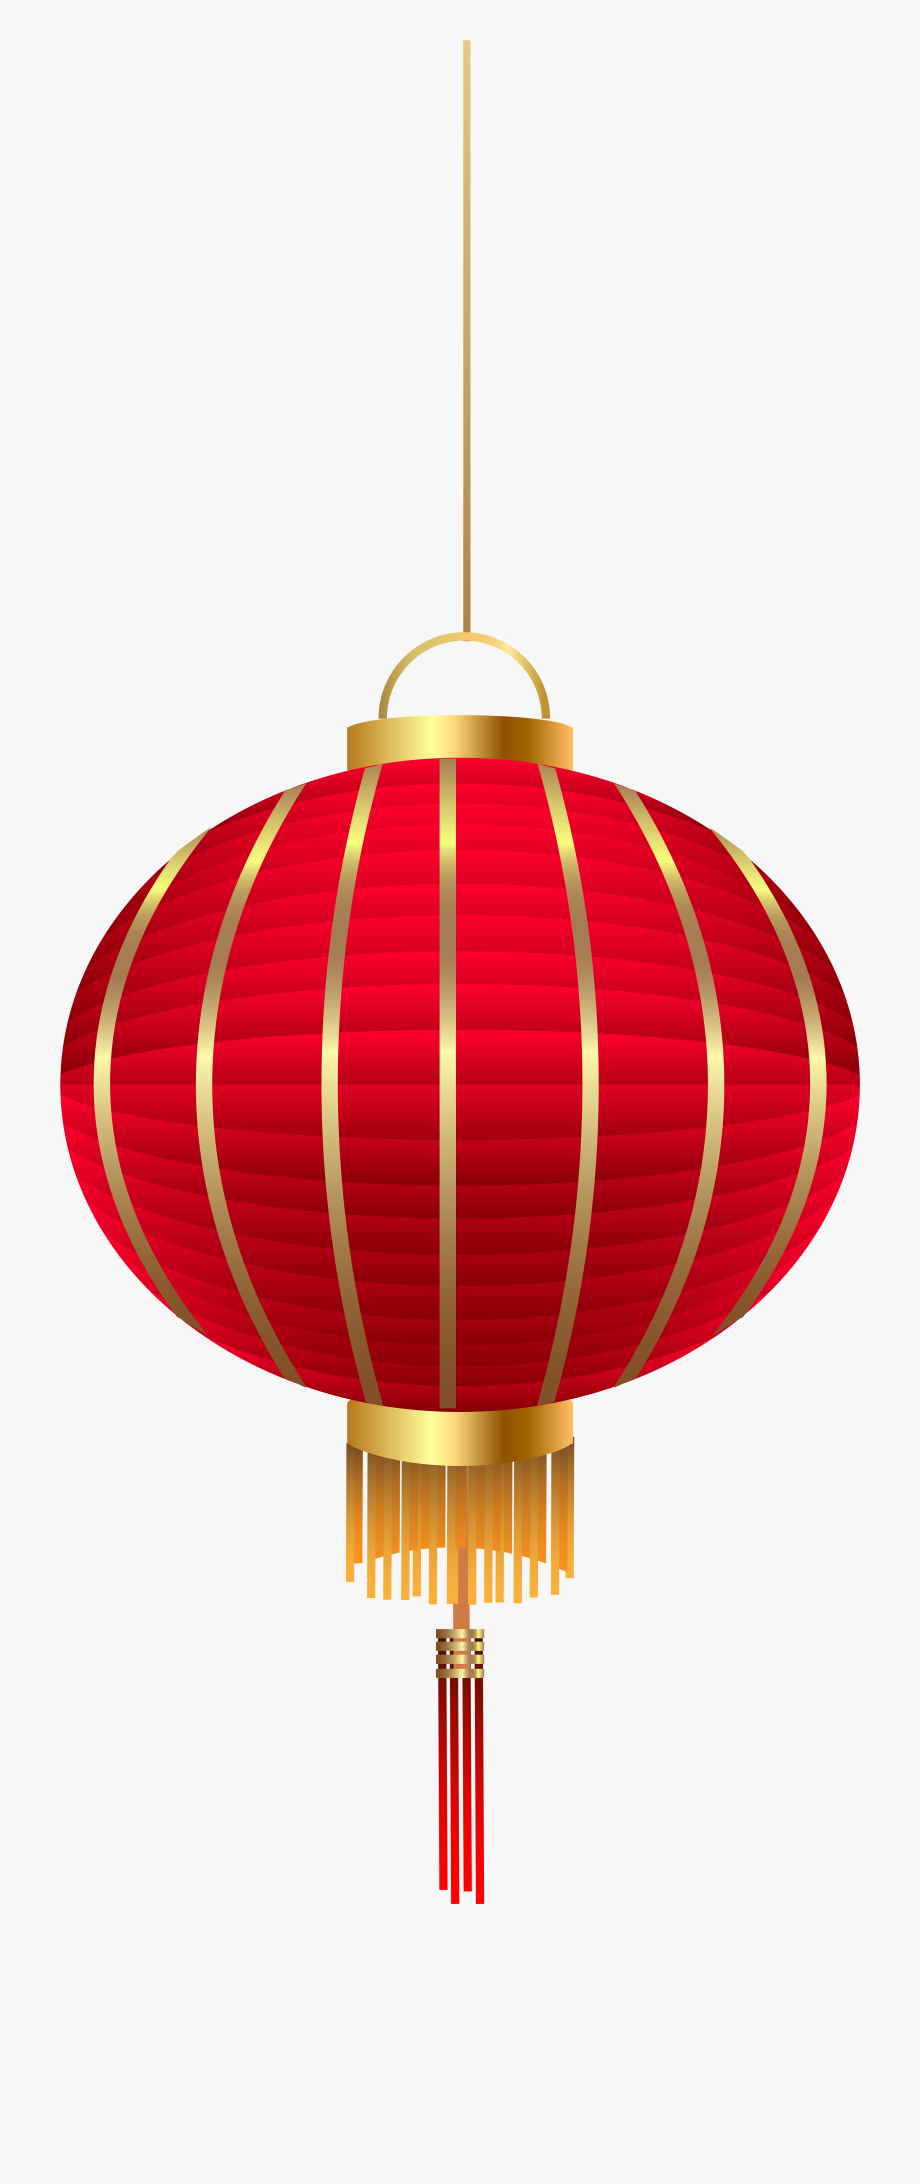 image transparent library Asian clipart lamp chinese. Light hanging lantern png.